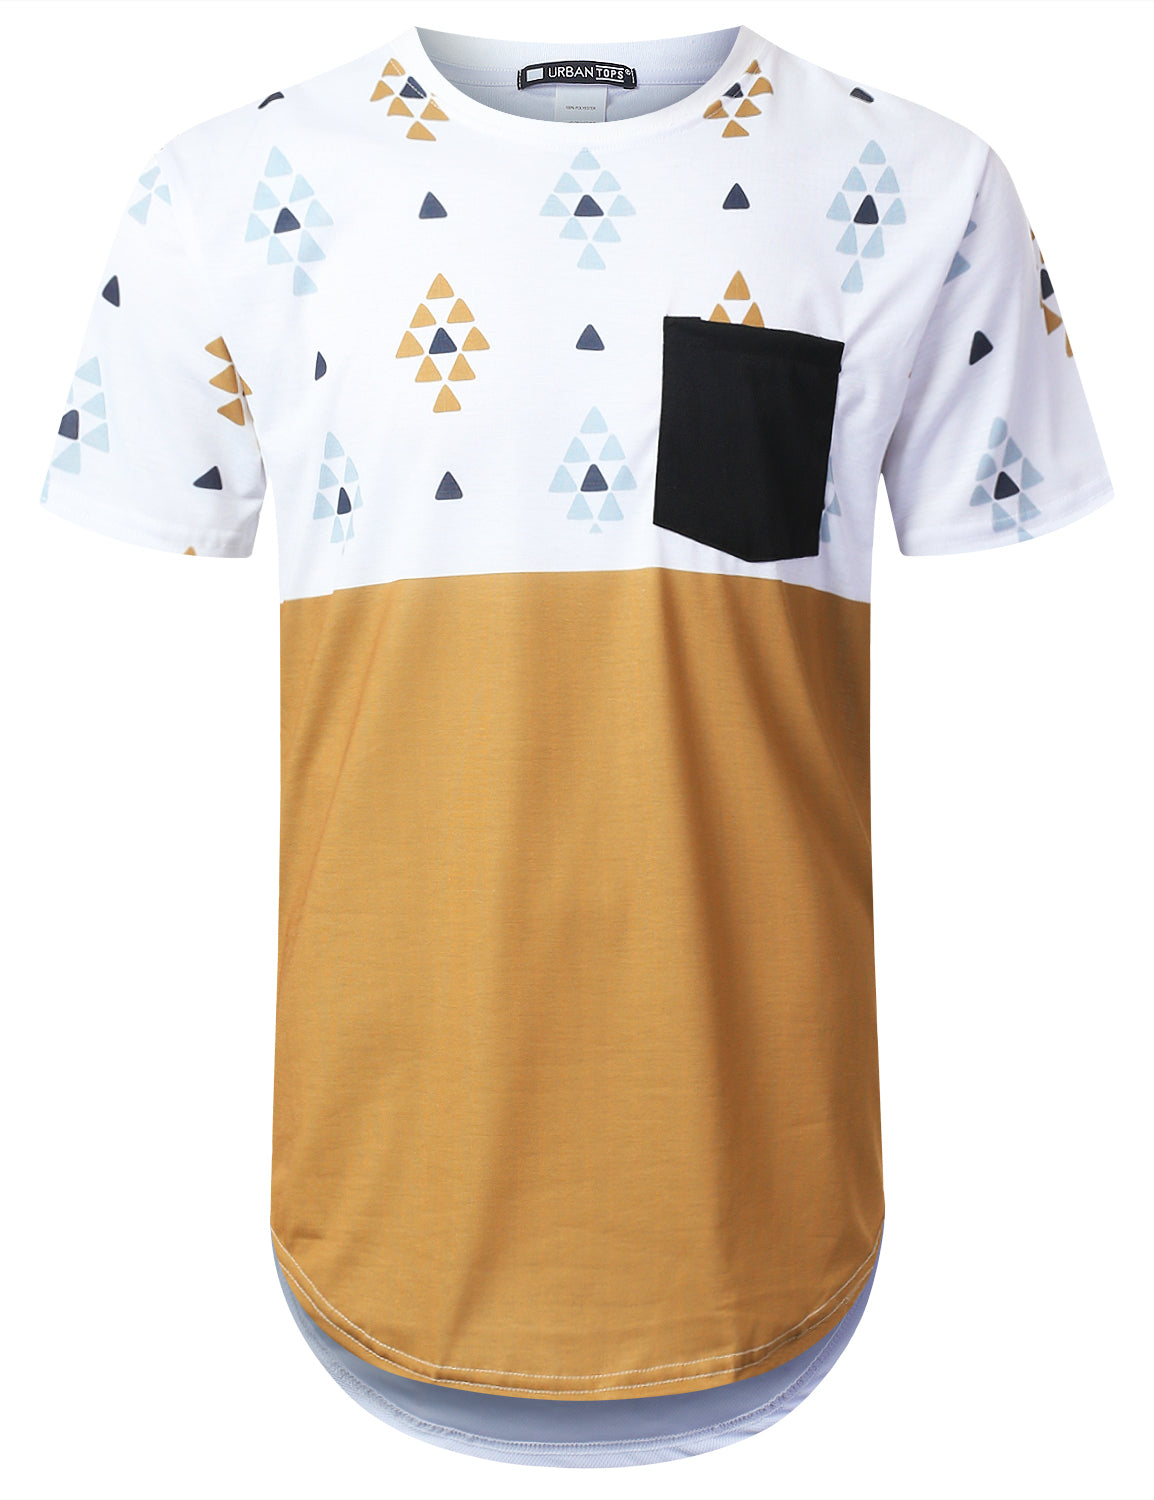 WHITE Triangle Panel Pocket Long T-shirt - URBANCREWS